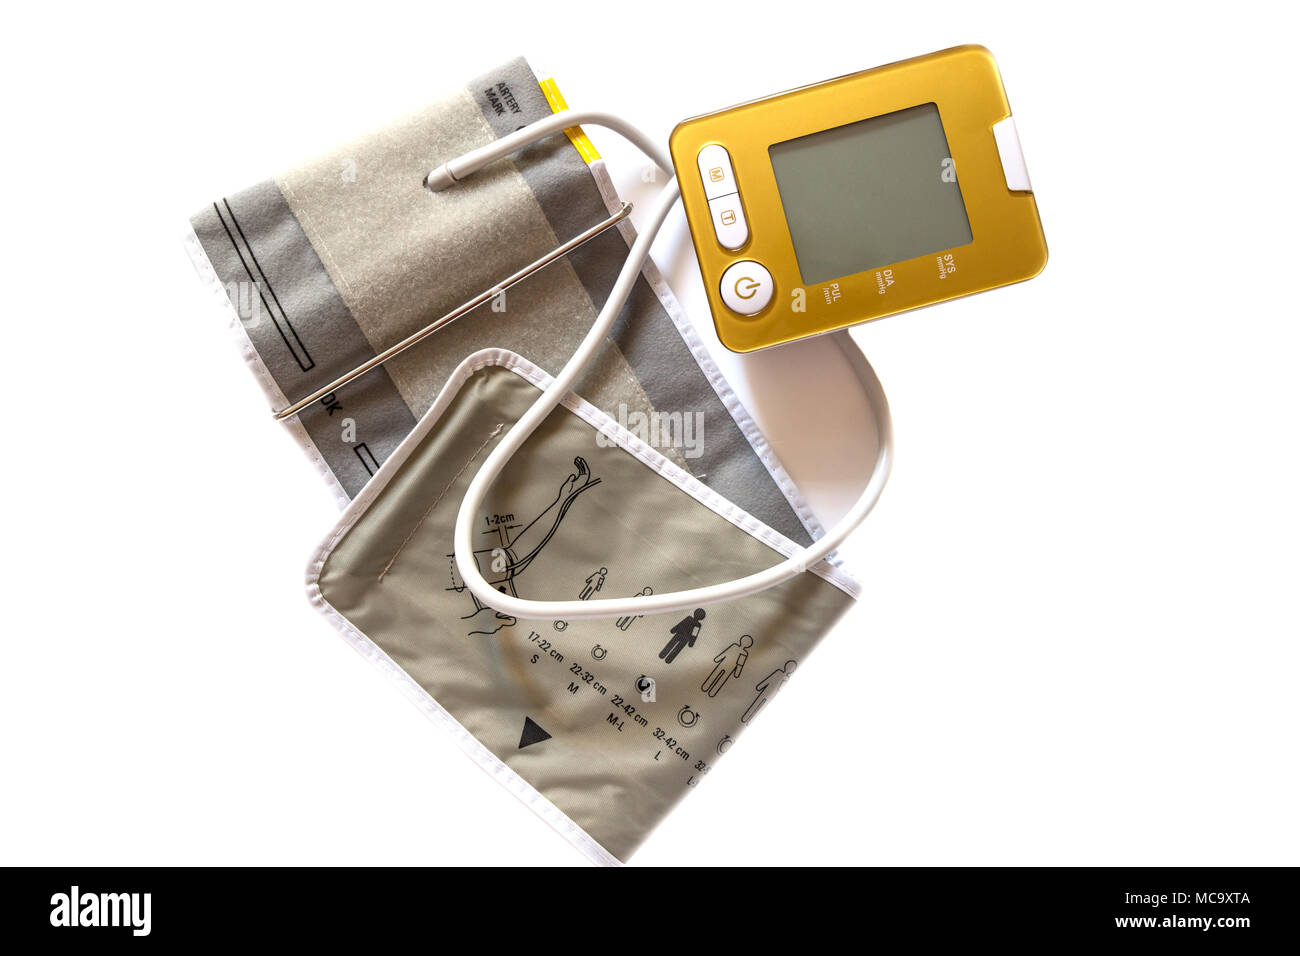 Digital Blood Pressure Monitor isolated on white background. - Stock Image